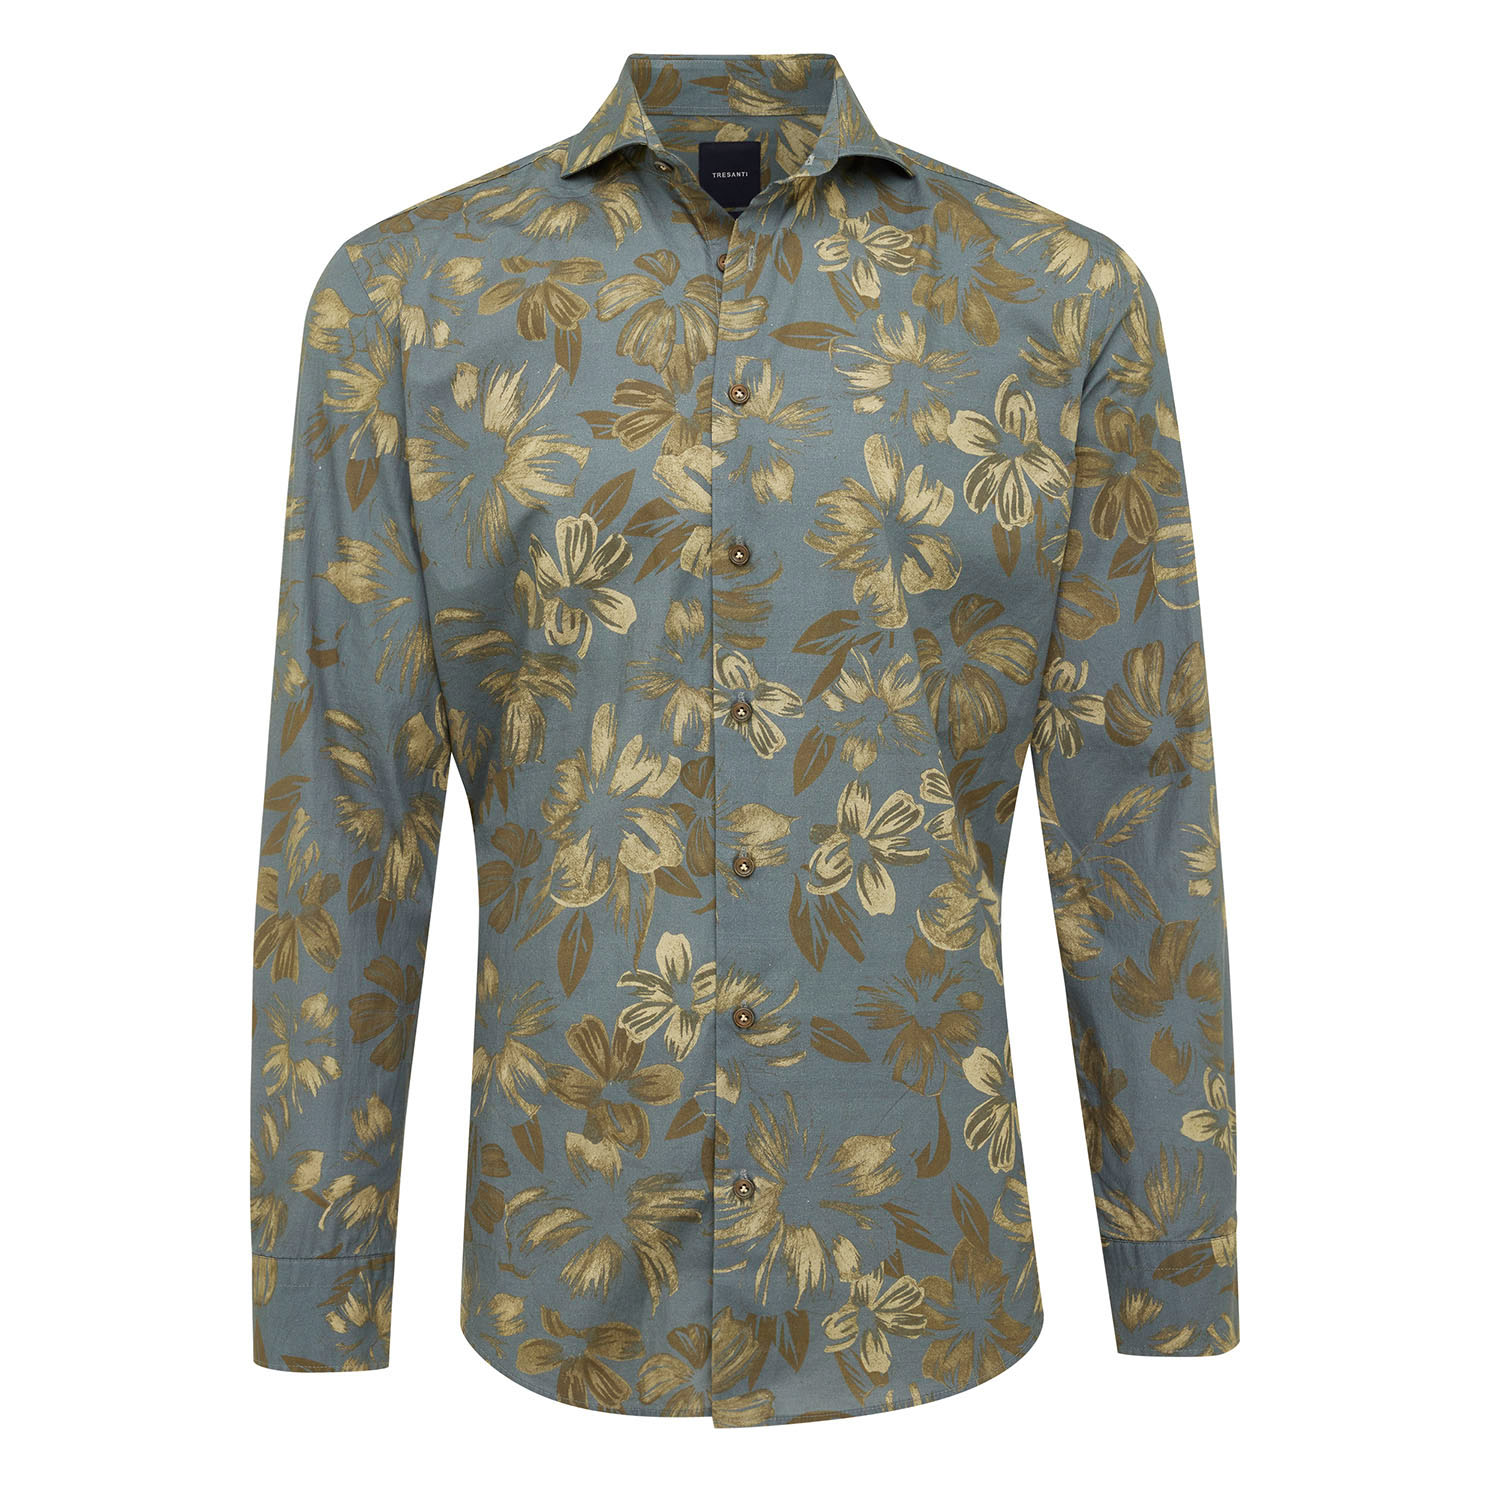 EVIN | Shirt with button closure and floral design olive green